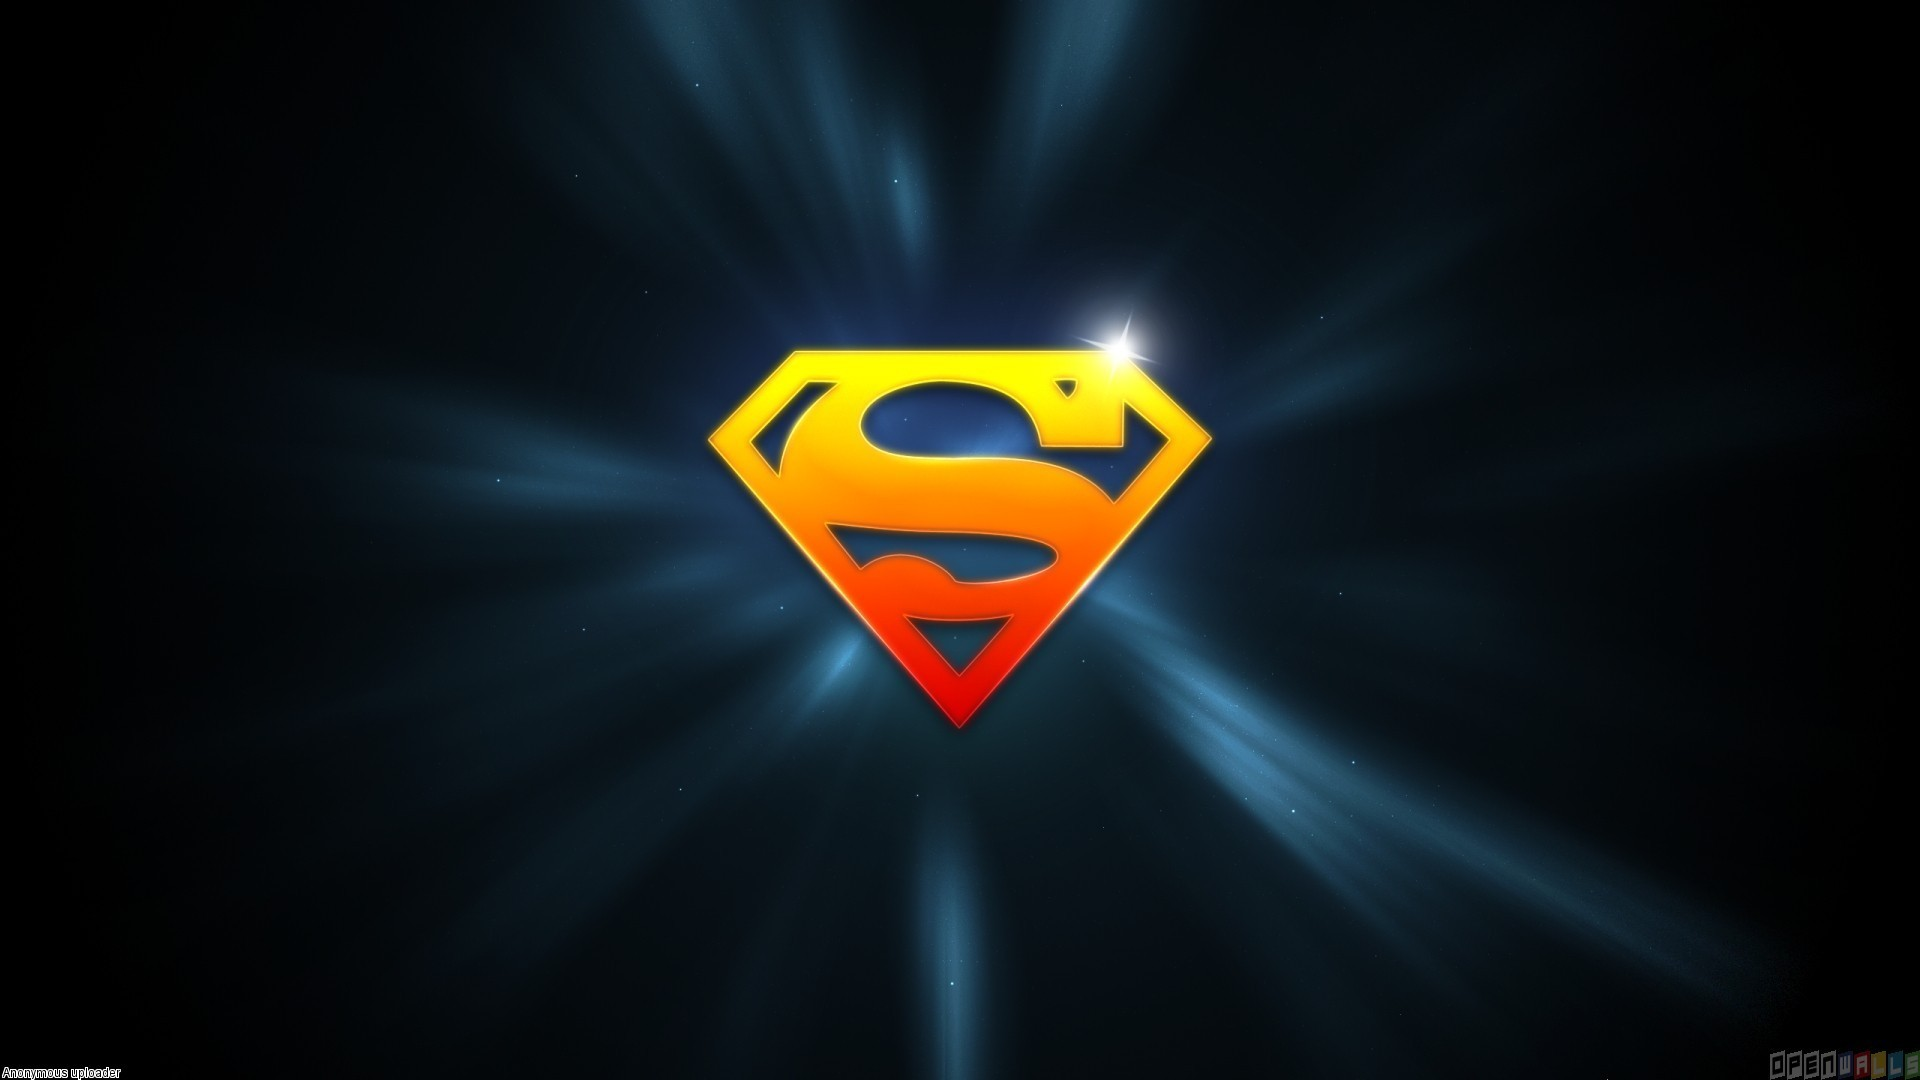 Superman Logo Wallpaper 2018 56 Images